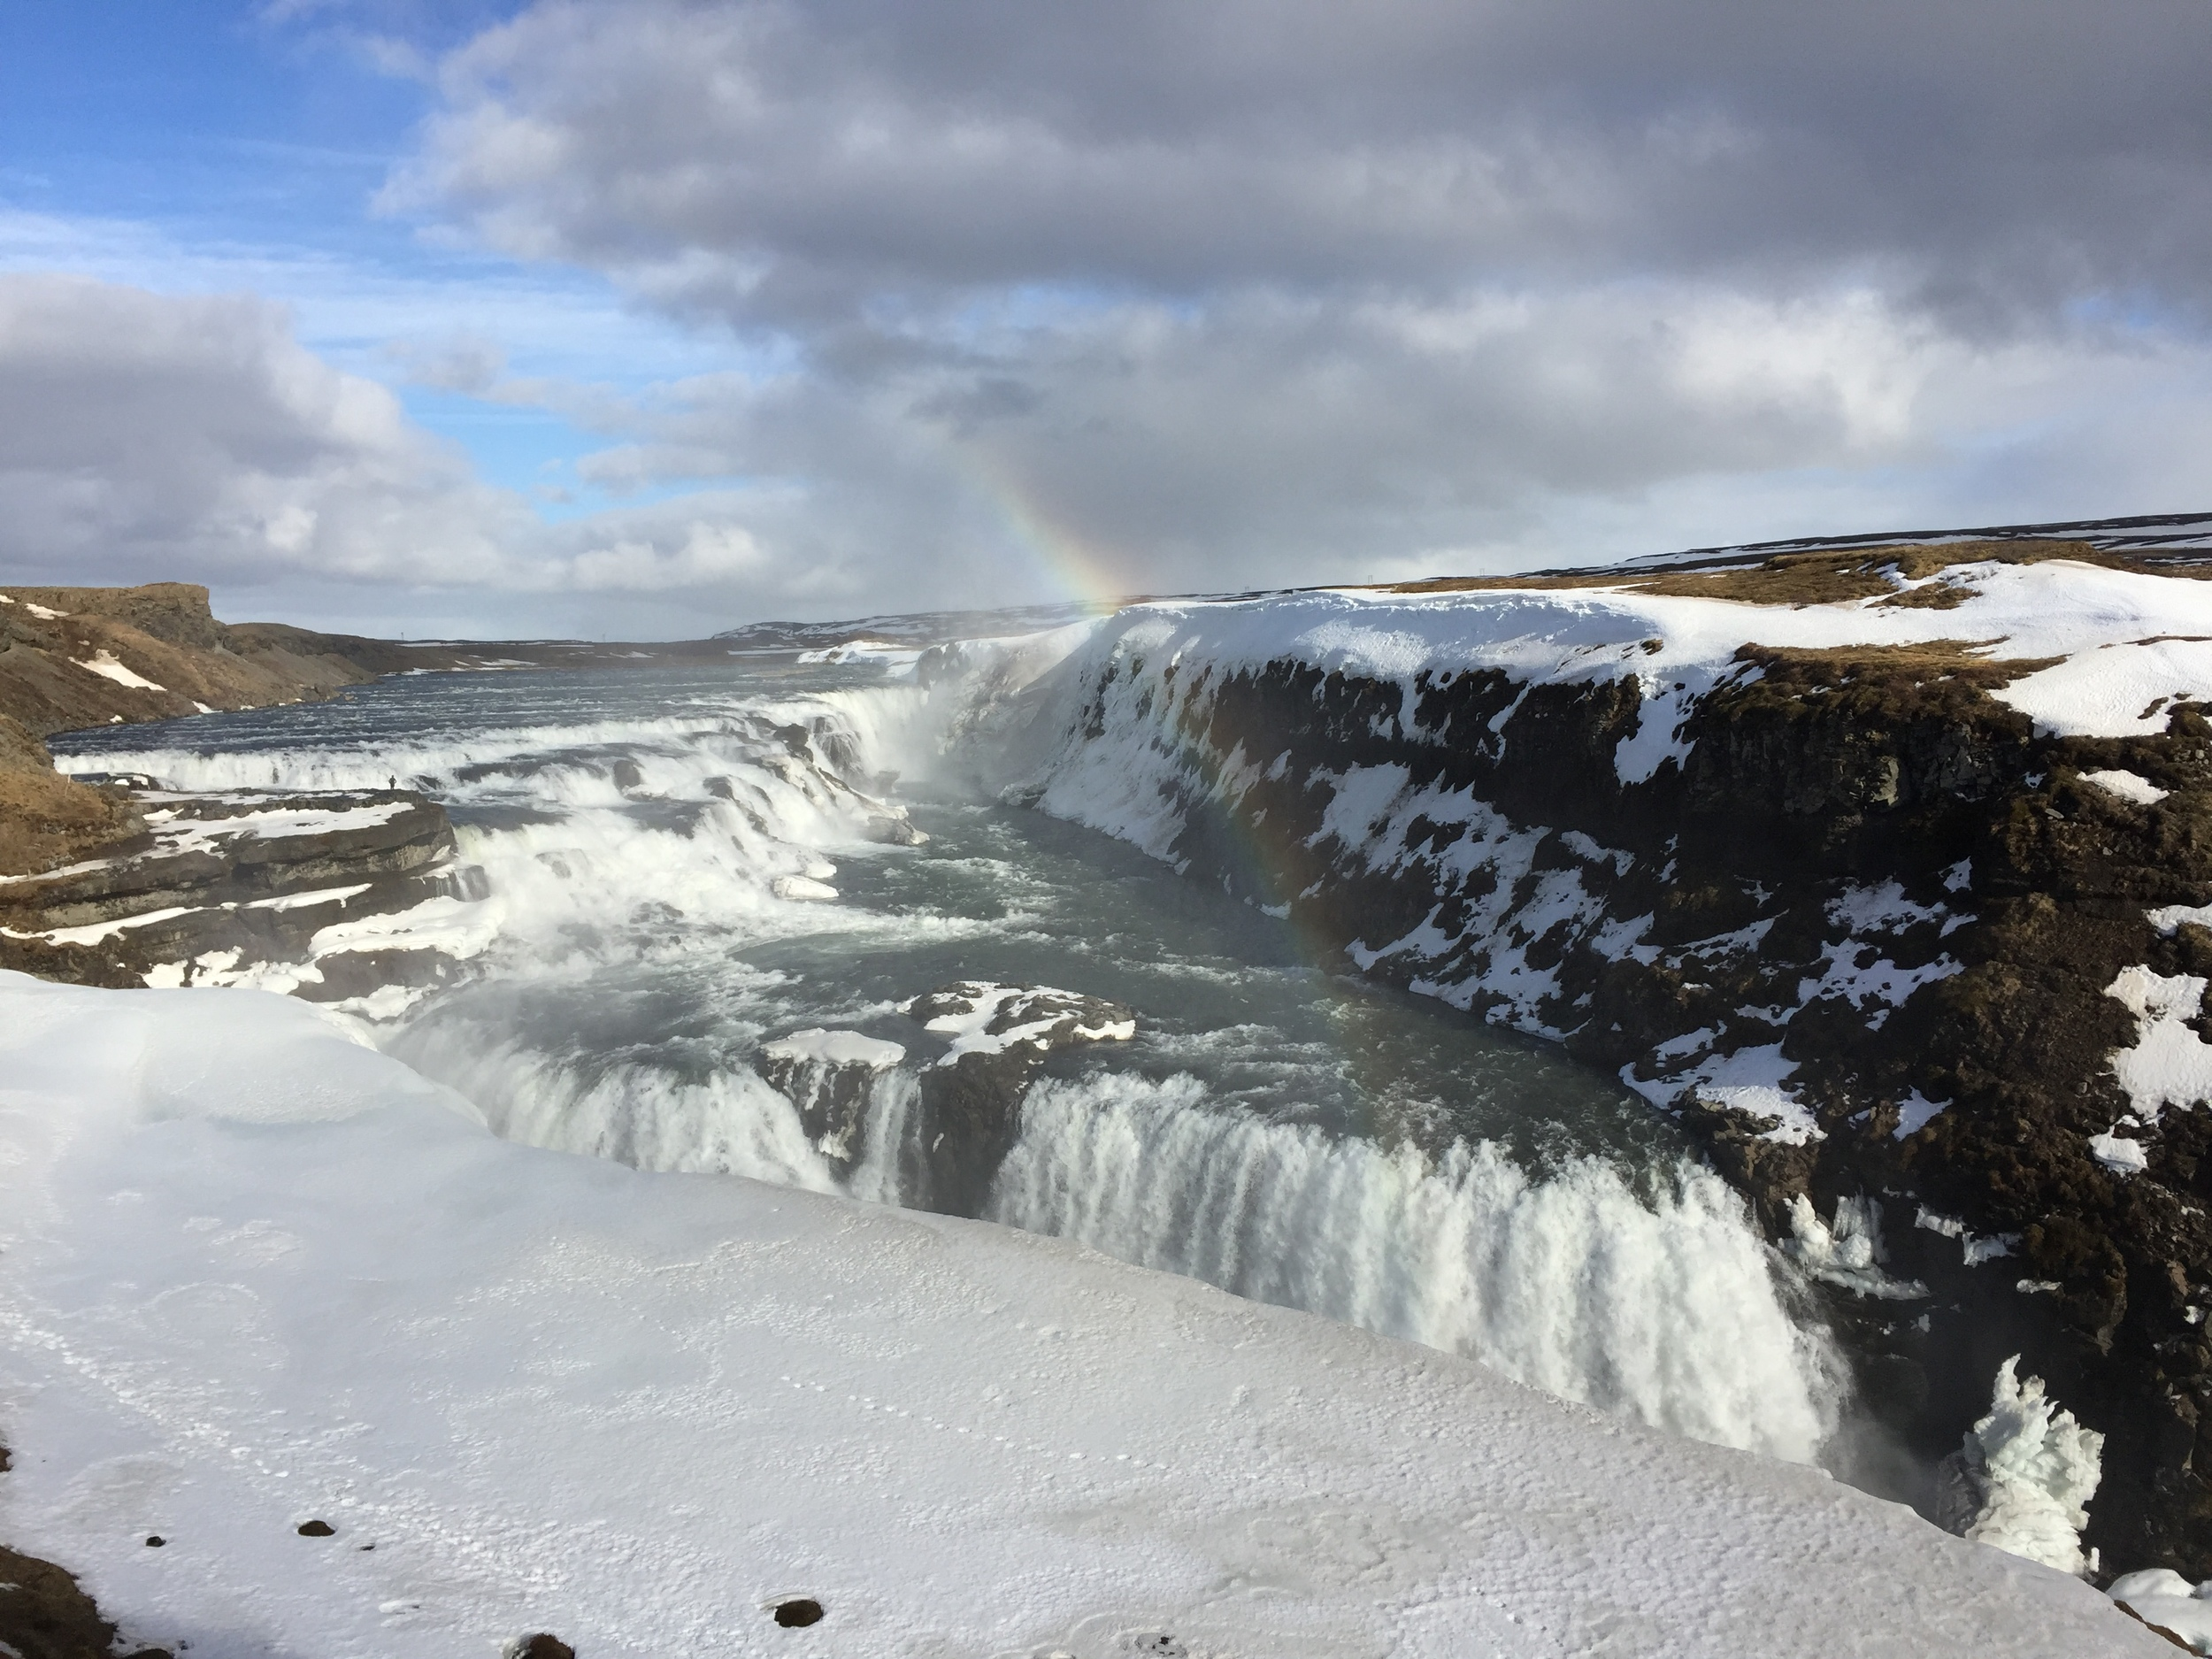 Gullfoss, one of the largest waterfalls in the world, replete with rainbow. Photo does not do the scale of the thing justice.